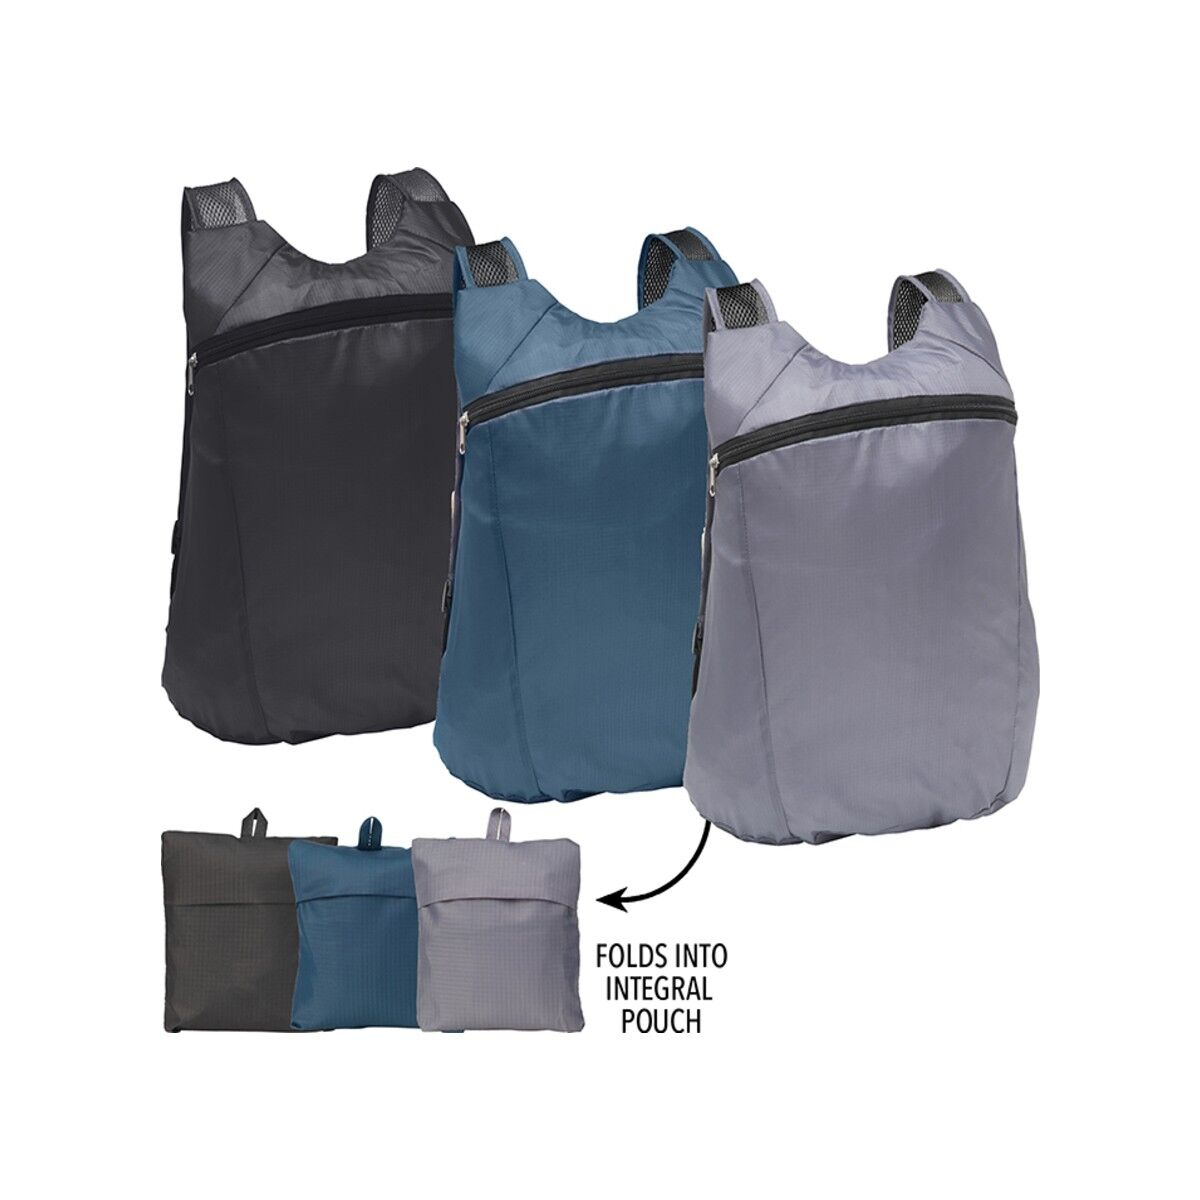 Fold Up Backpack folds into pouch